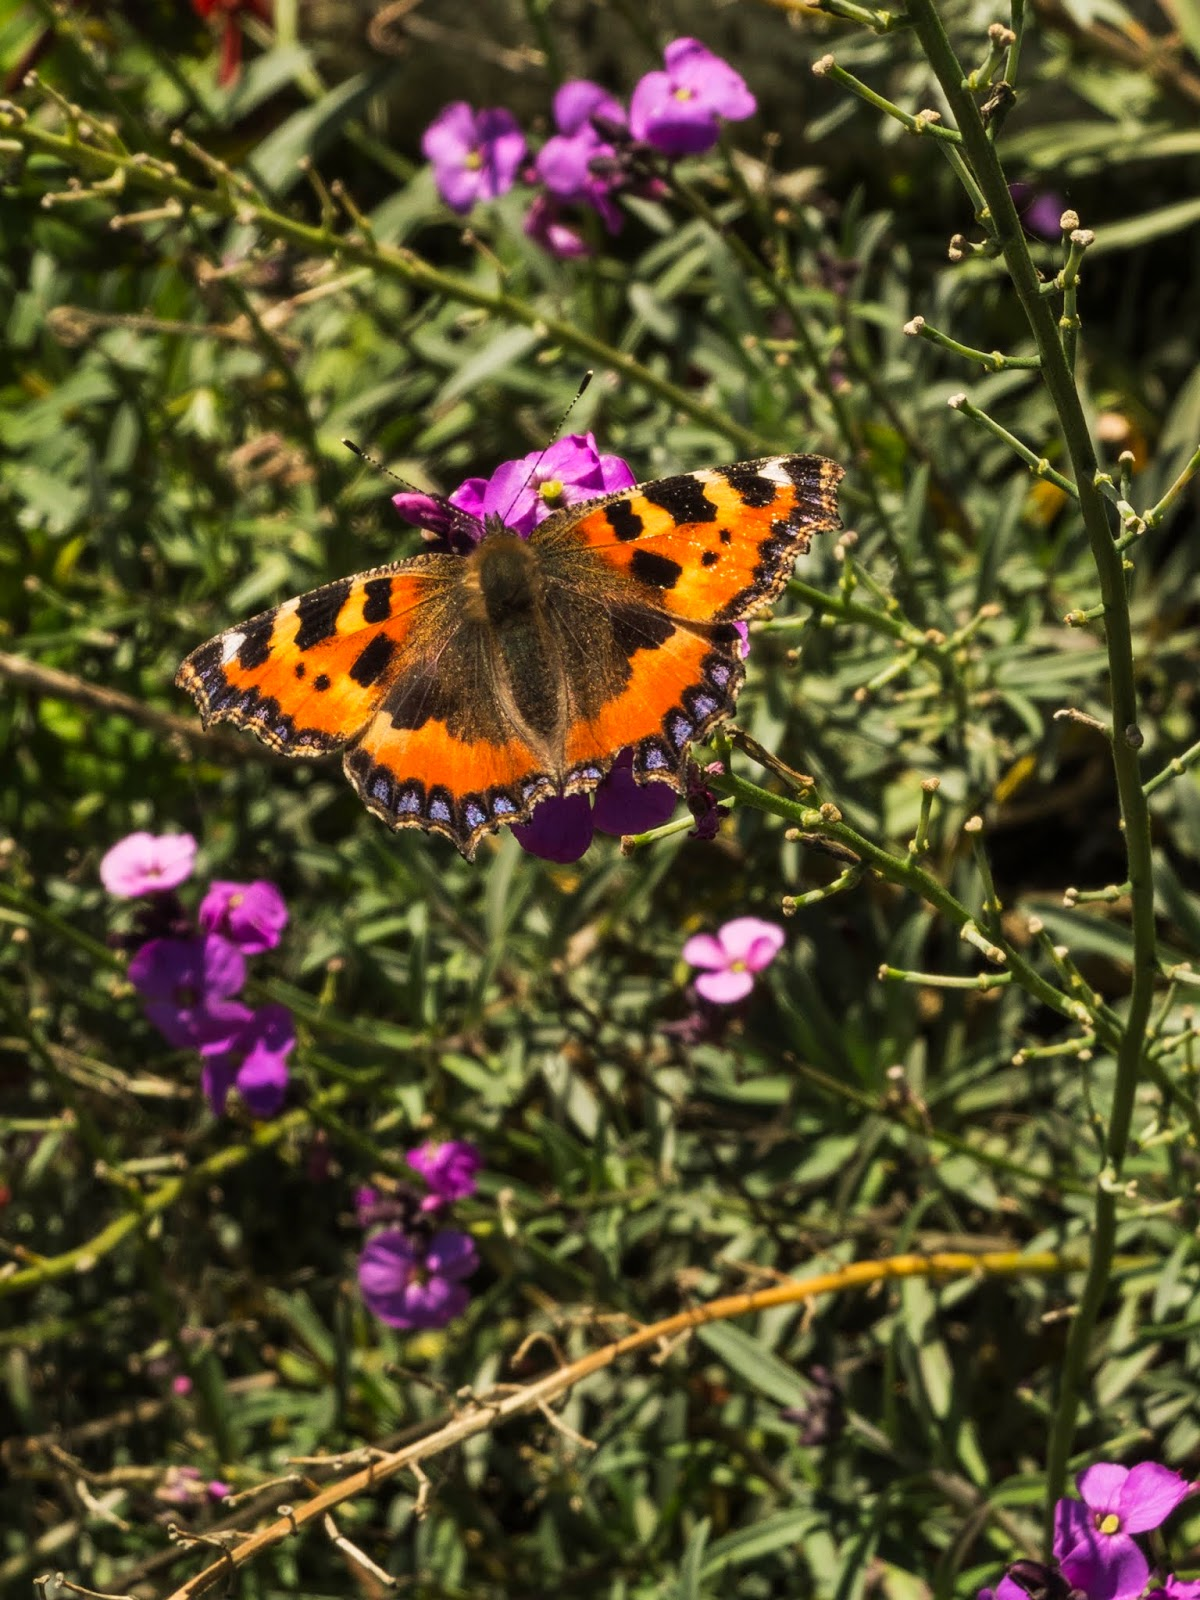 A butterfly sitting on a a purple wall flower in the sunlight.